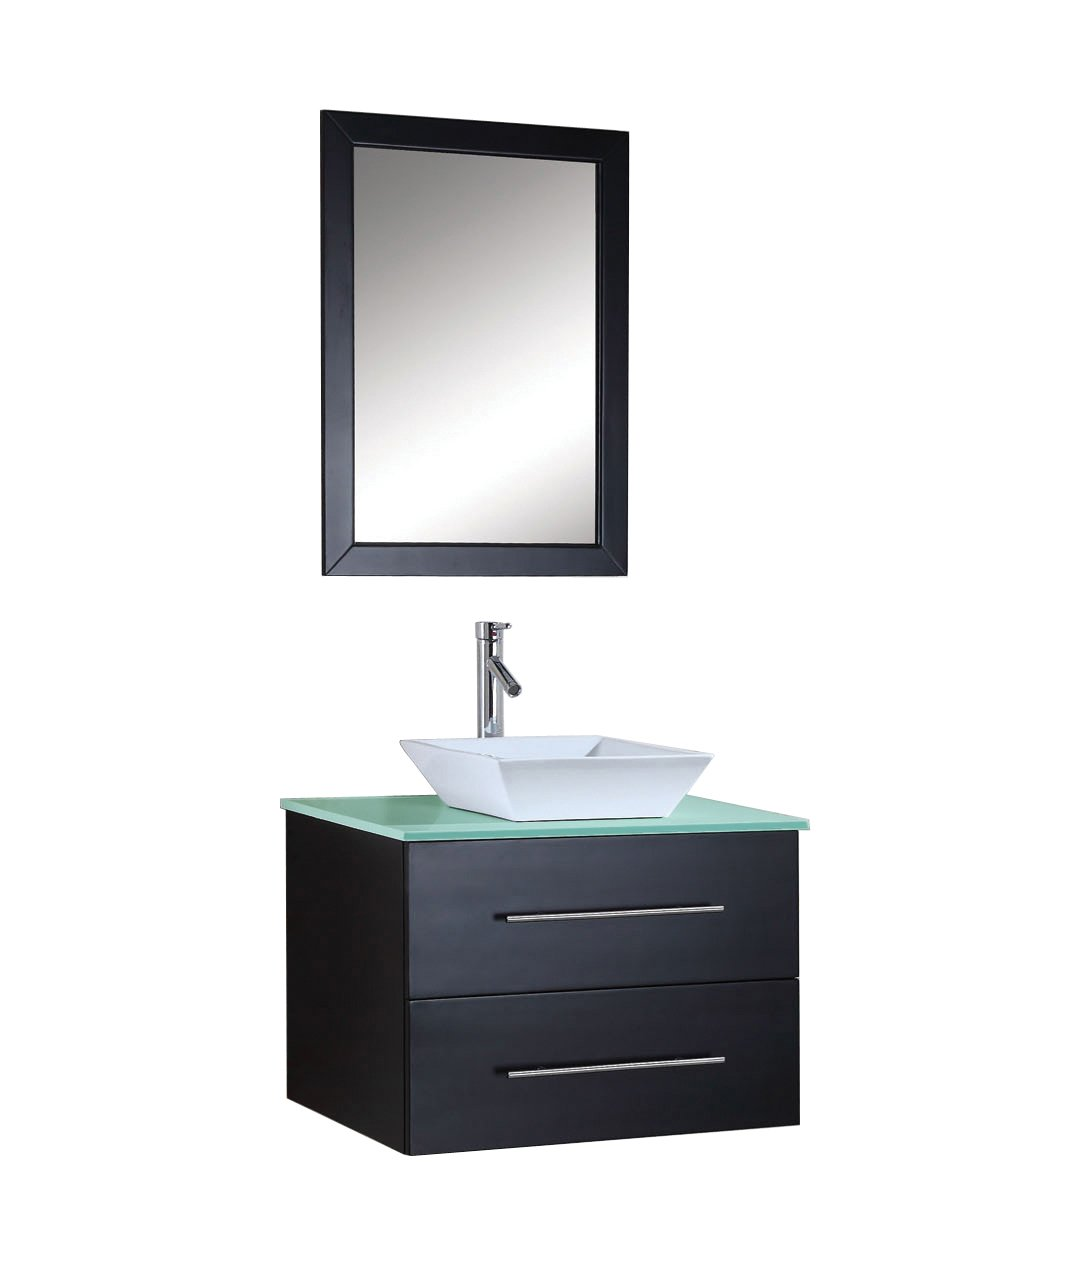 Virtu USA MS-560-G-ES Marsala 30-Inch Wall-Mounted Single Sink Bathroom Vanity Set with Tempered Glass Countertop, Espresso Finish